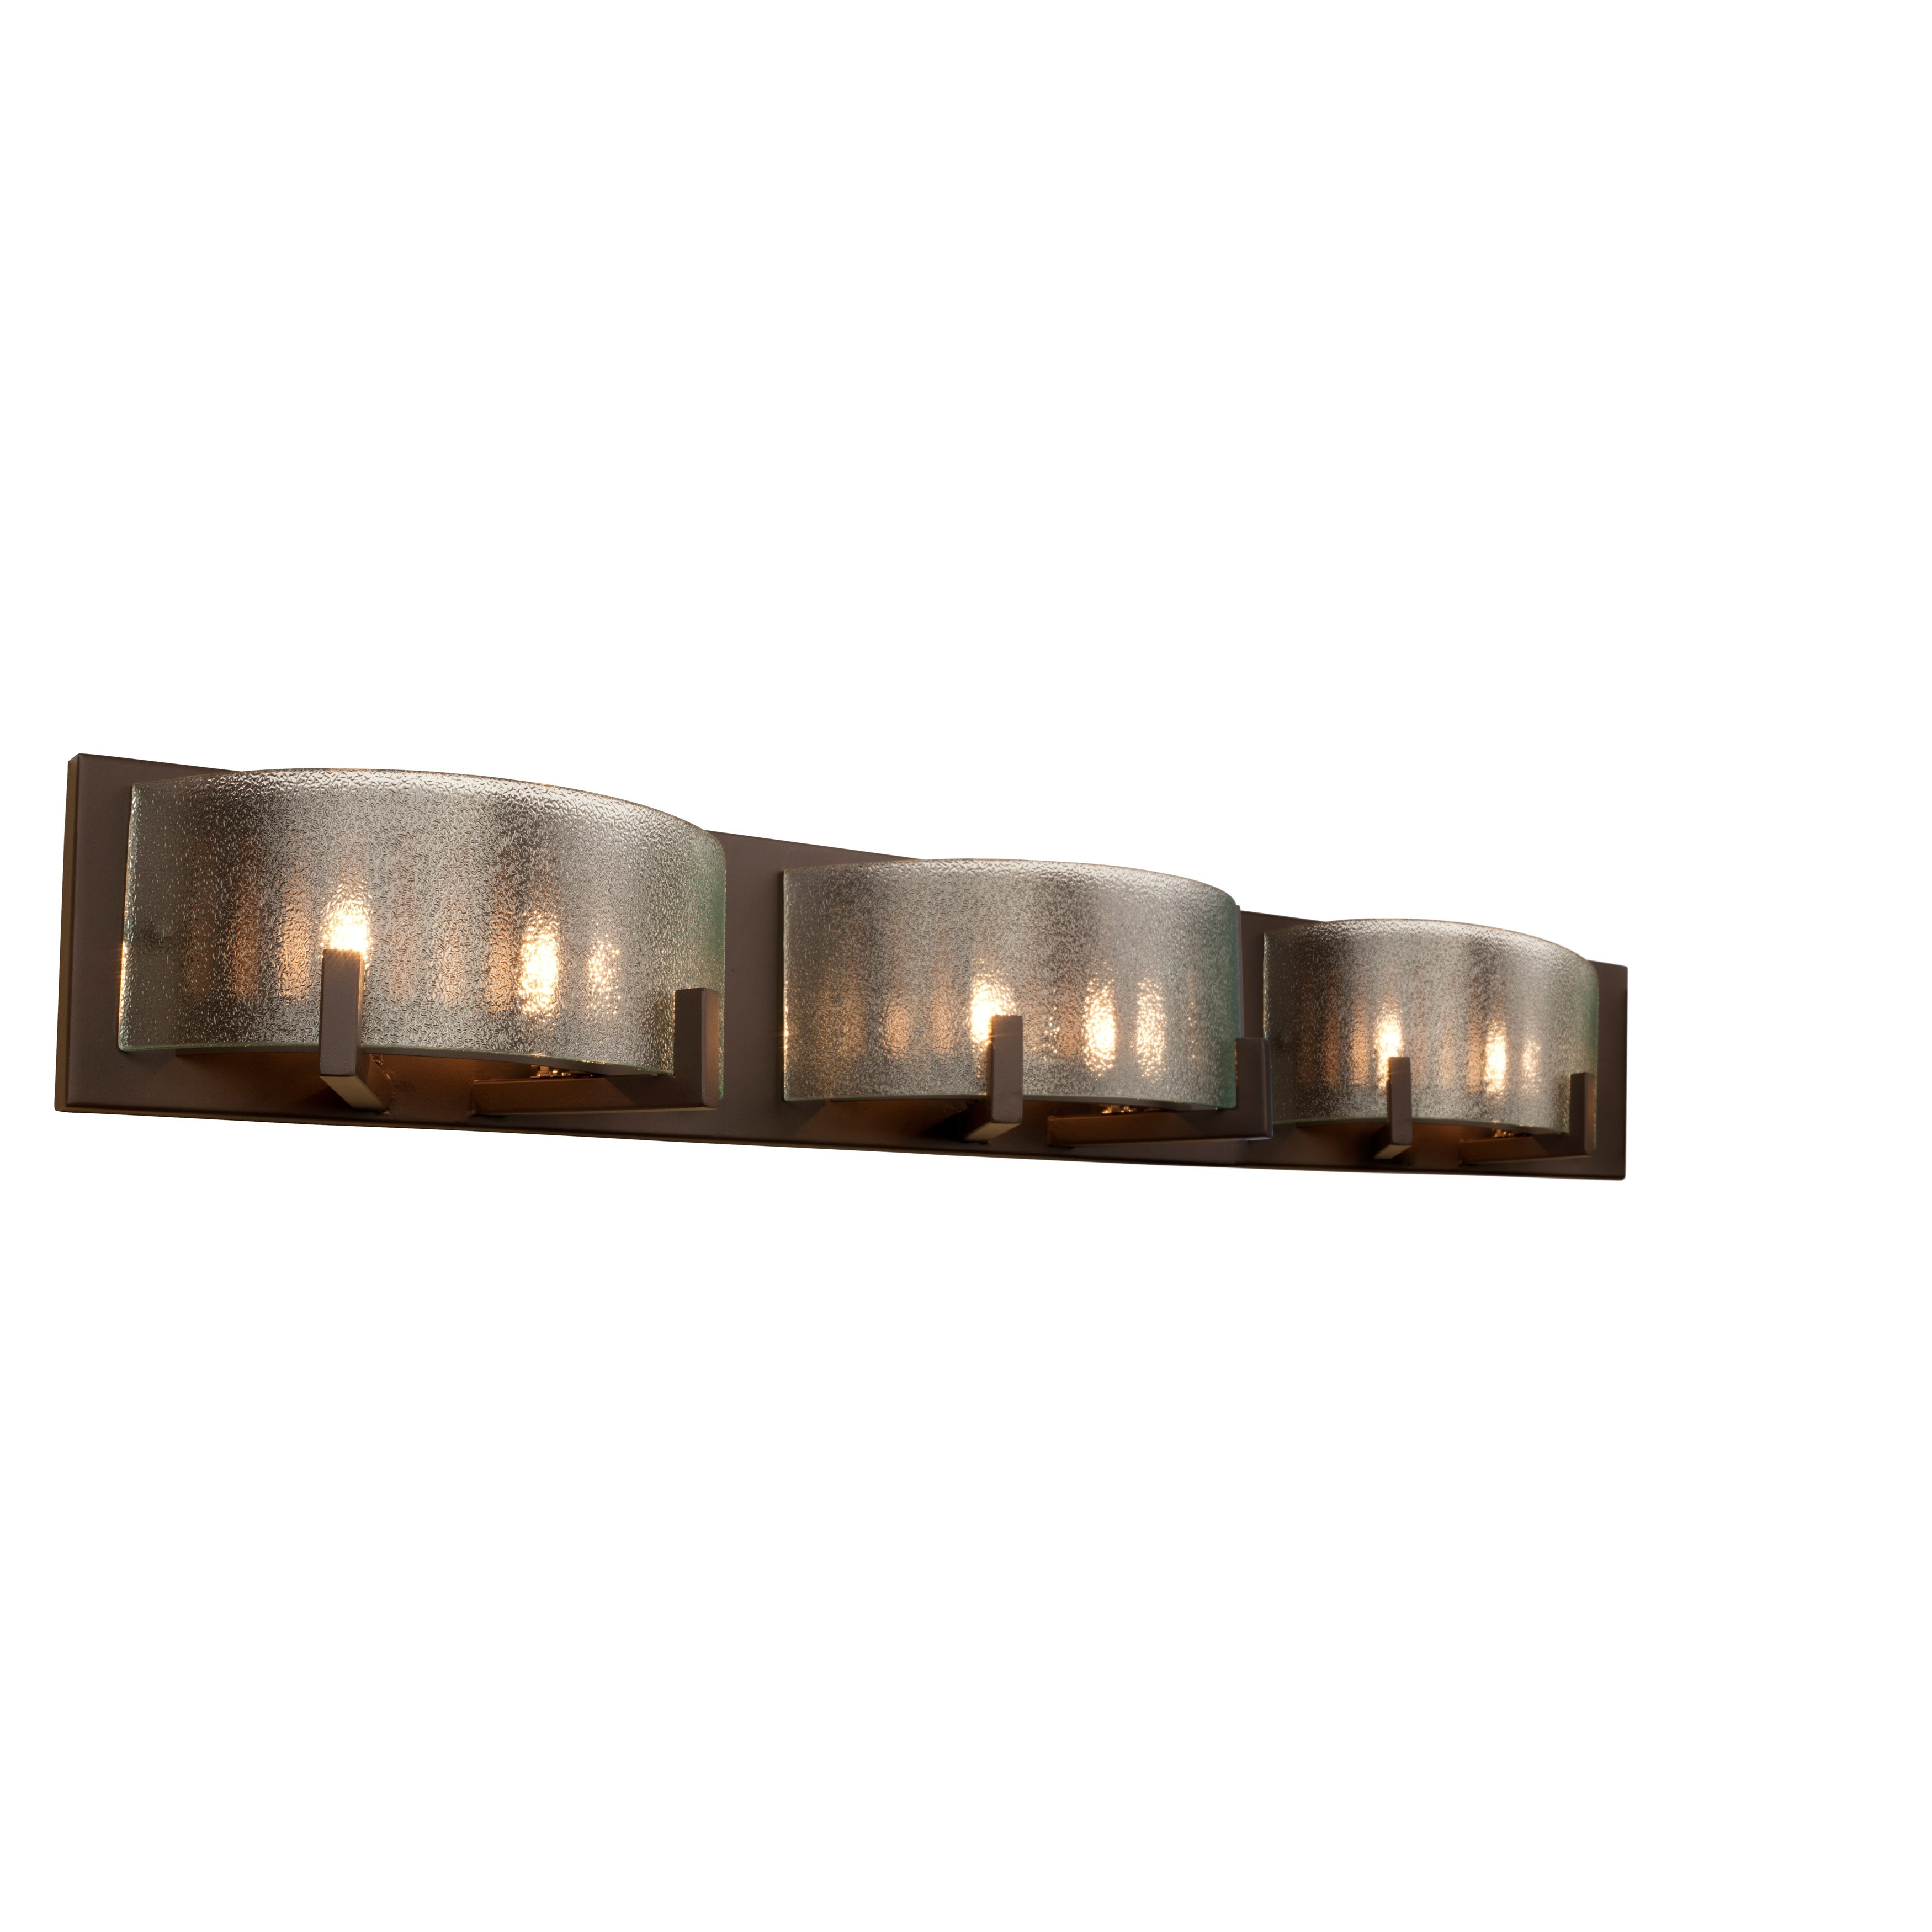 Alternating Current Firefly 6-light Bronze Vanity Fixture